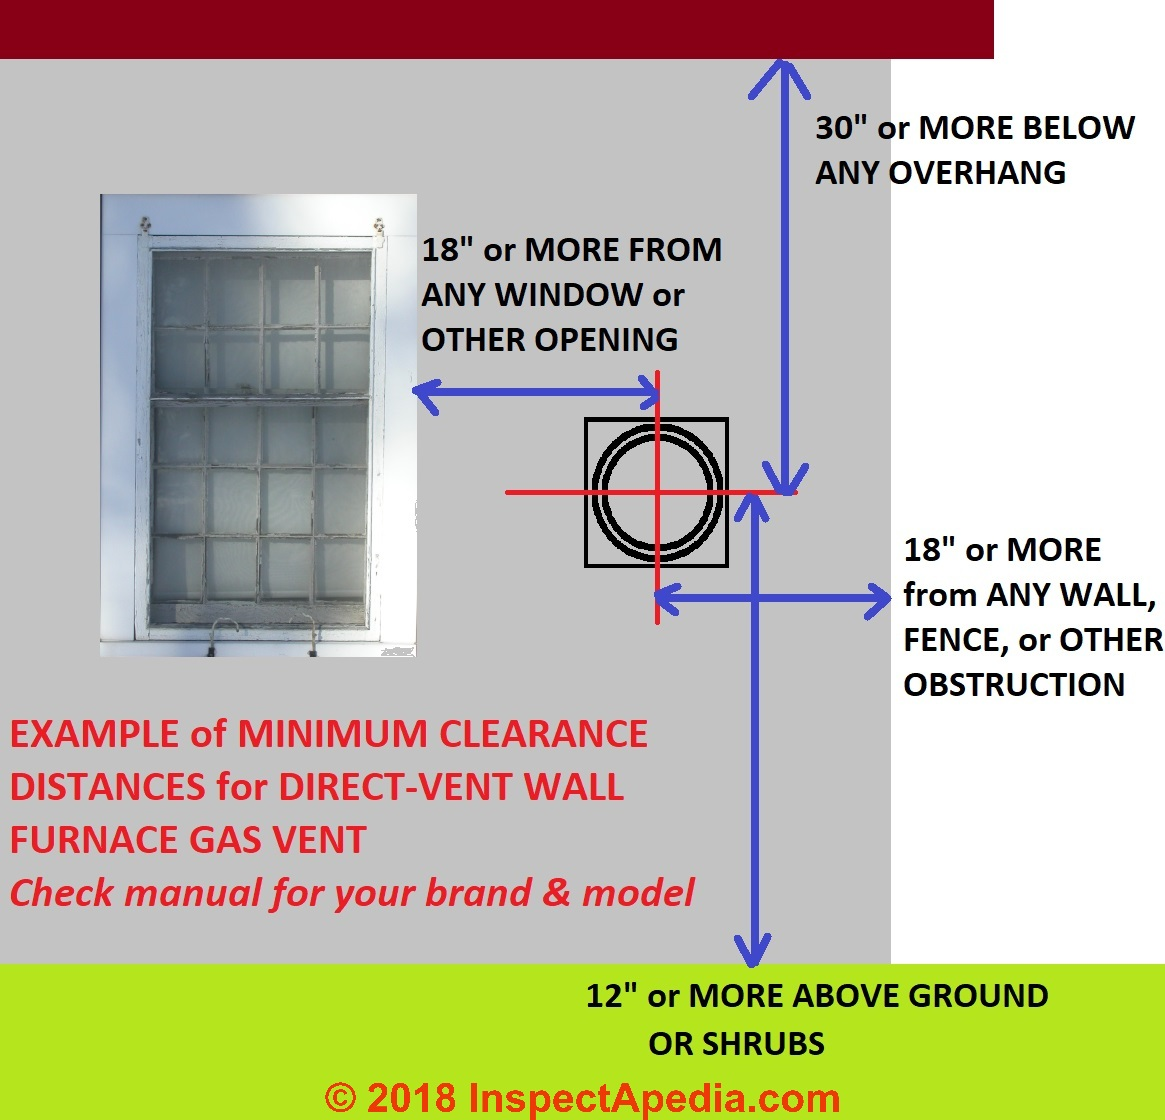 hight resolution of williams direct vent gas furnace vent clearance distances adapted from williams 2018 anbd cited